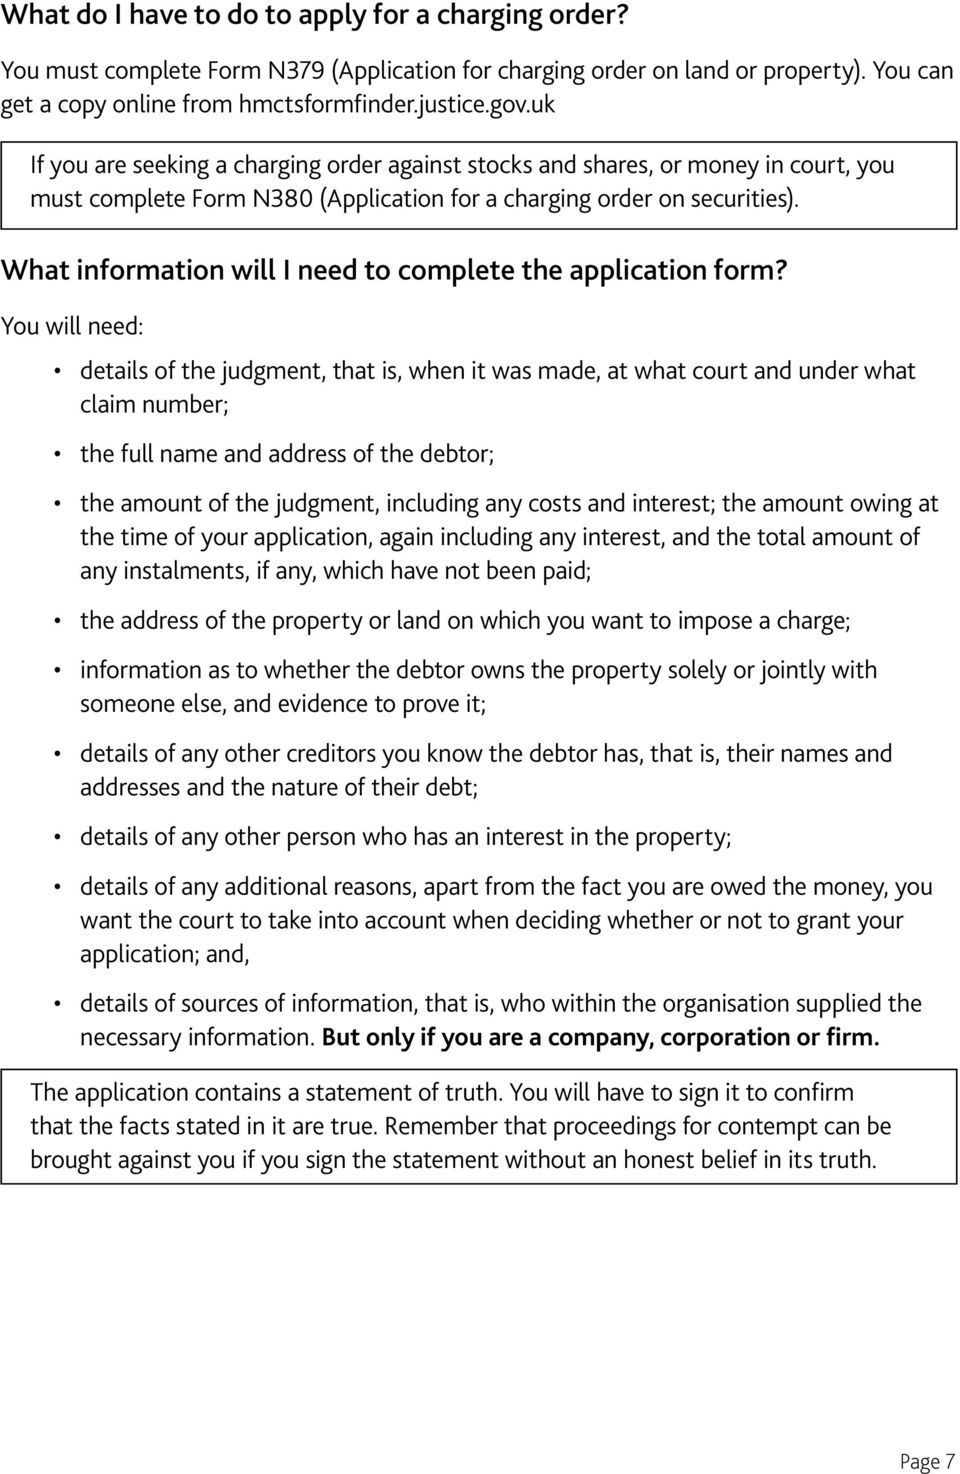 What information will I need to complete the application form?